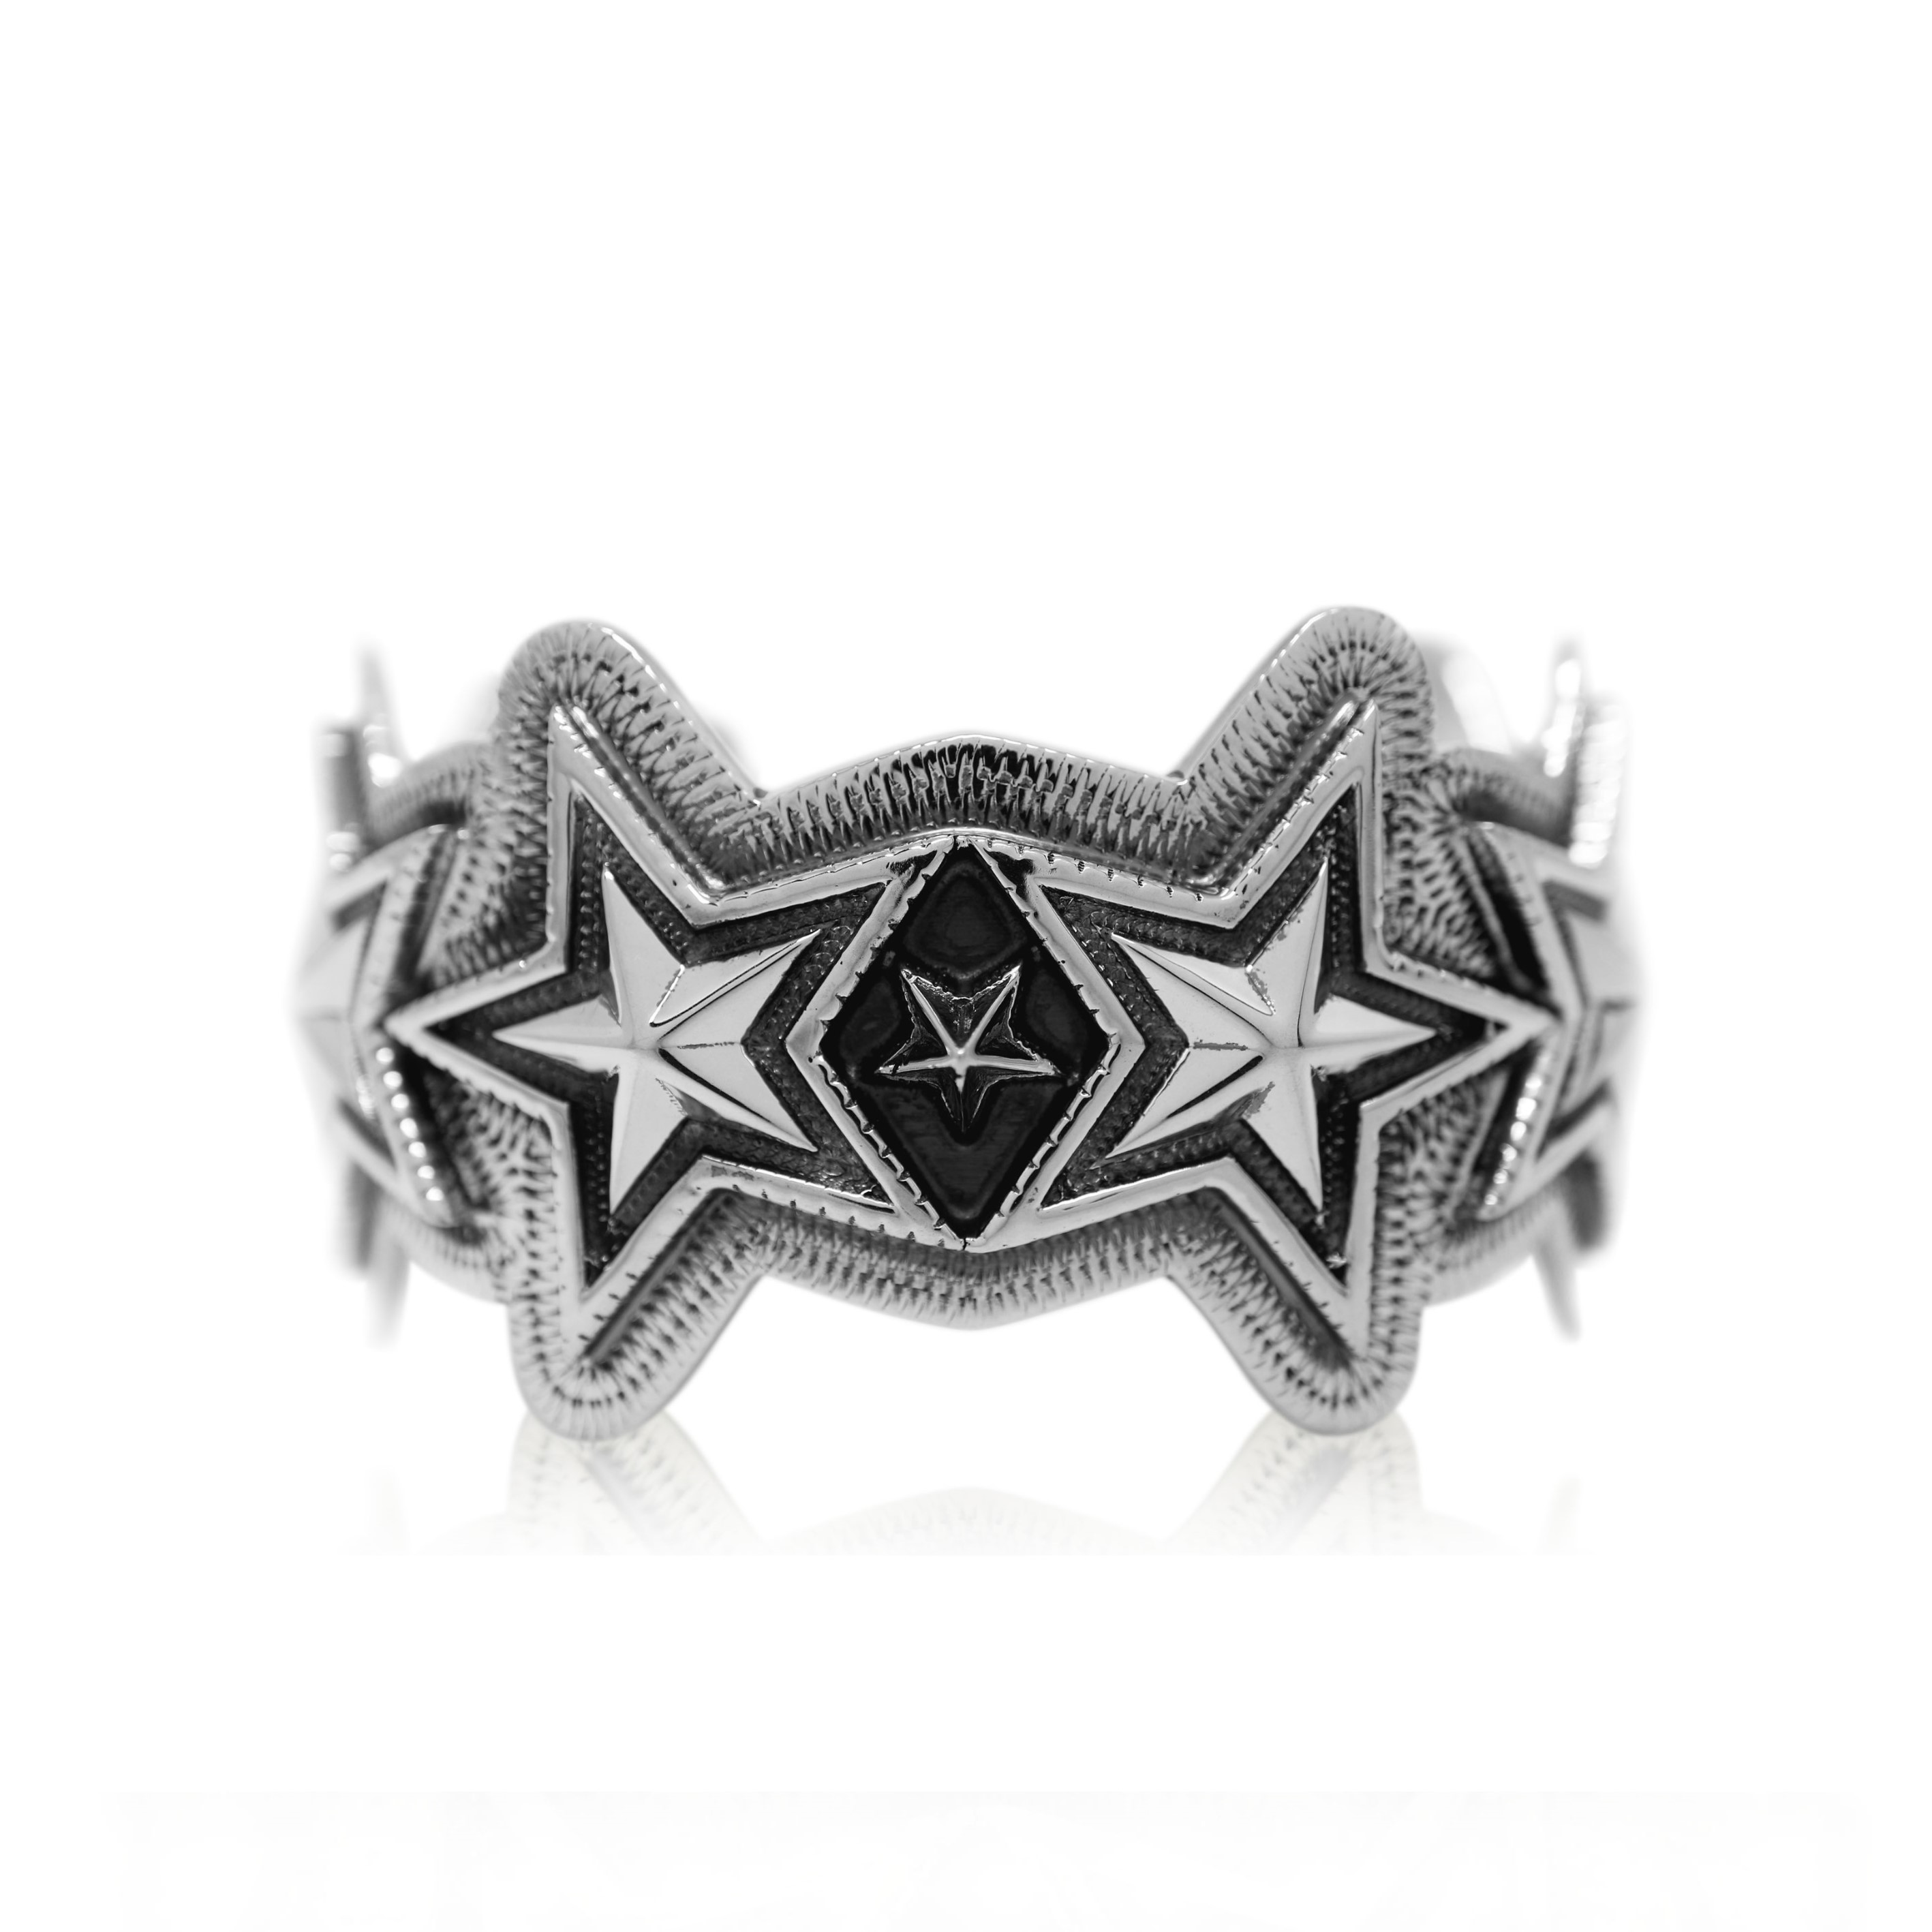 FACETED STARS & SPIKE STAR CUFF  [USD $2010]